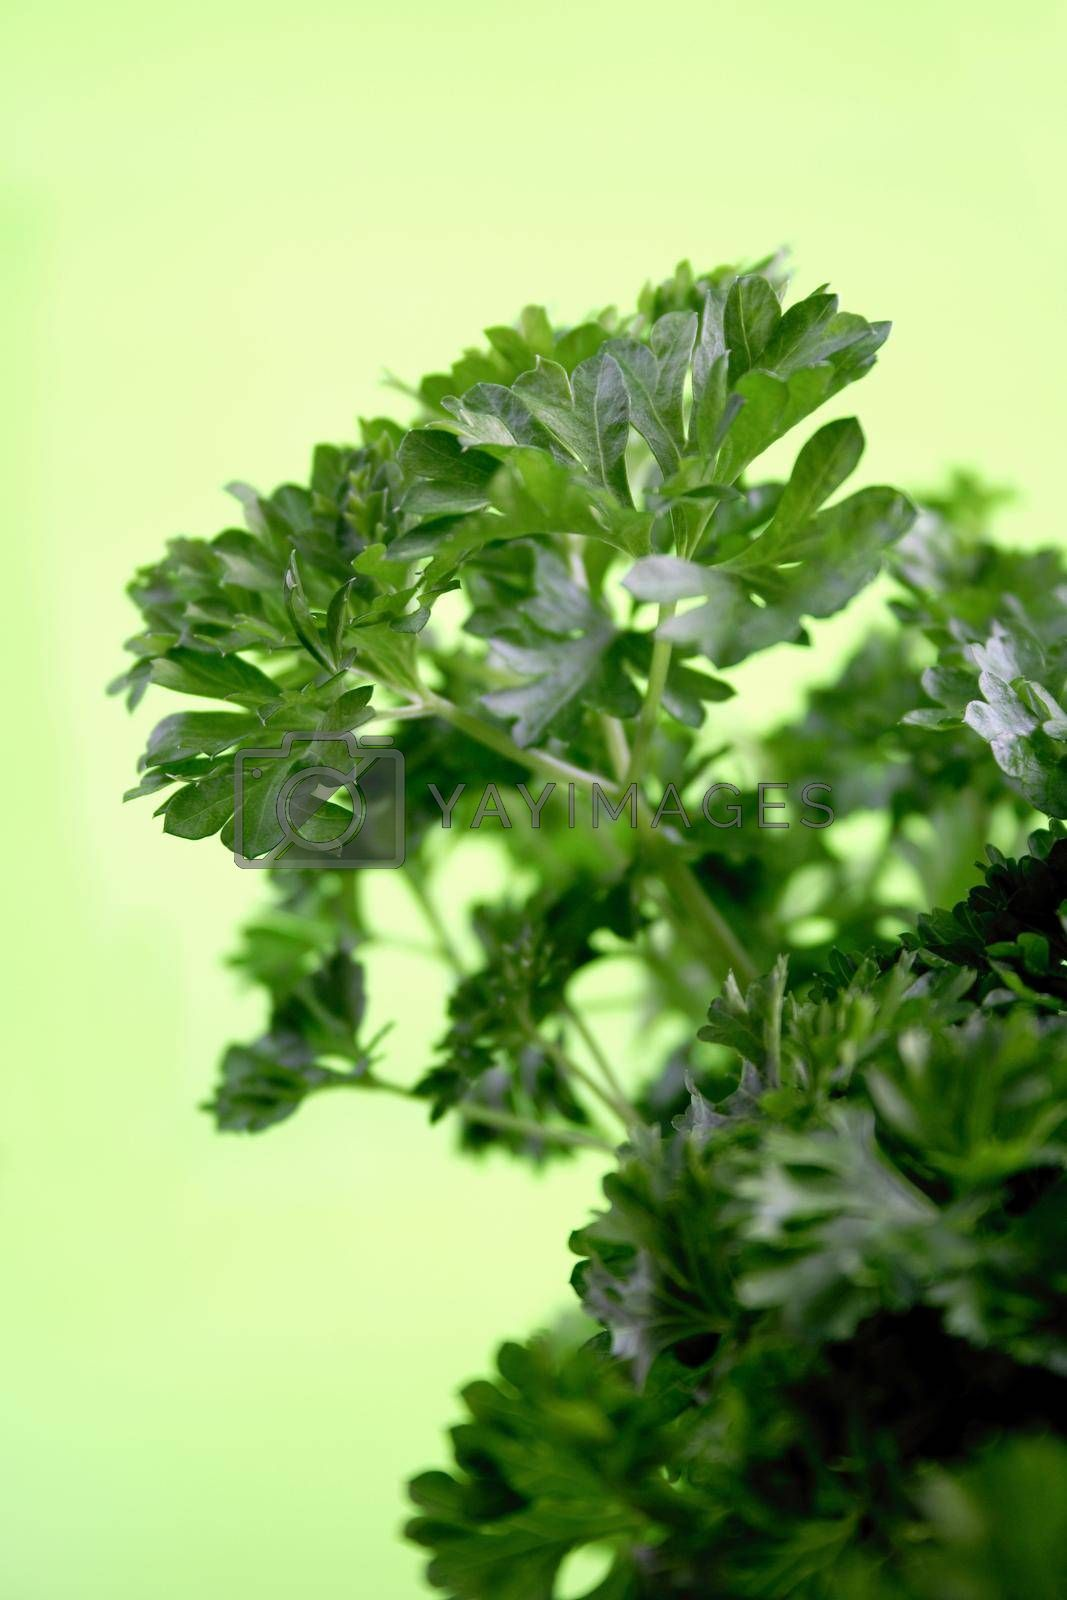 Close-up of parsley - studio shot